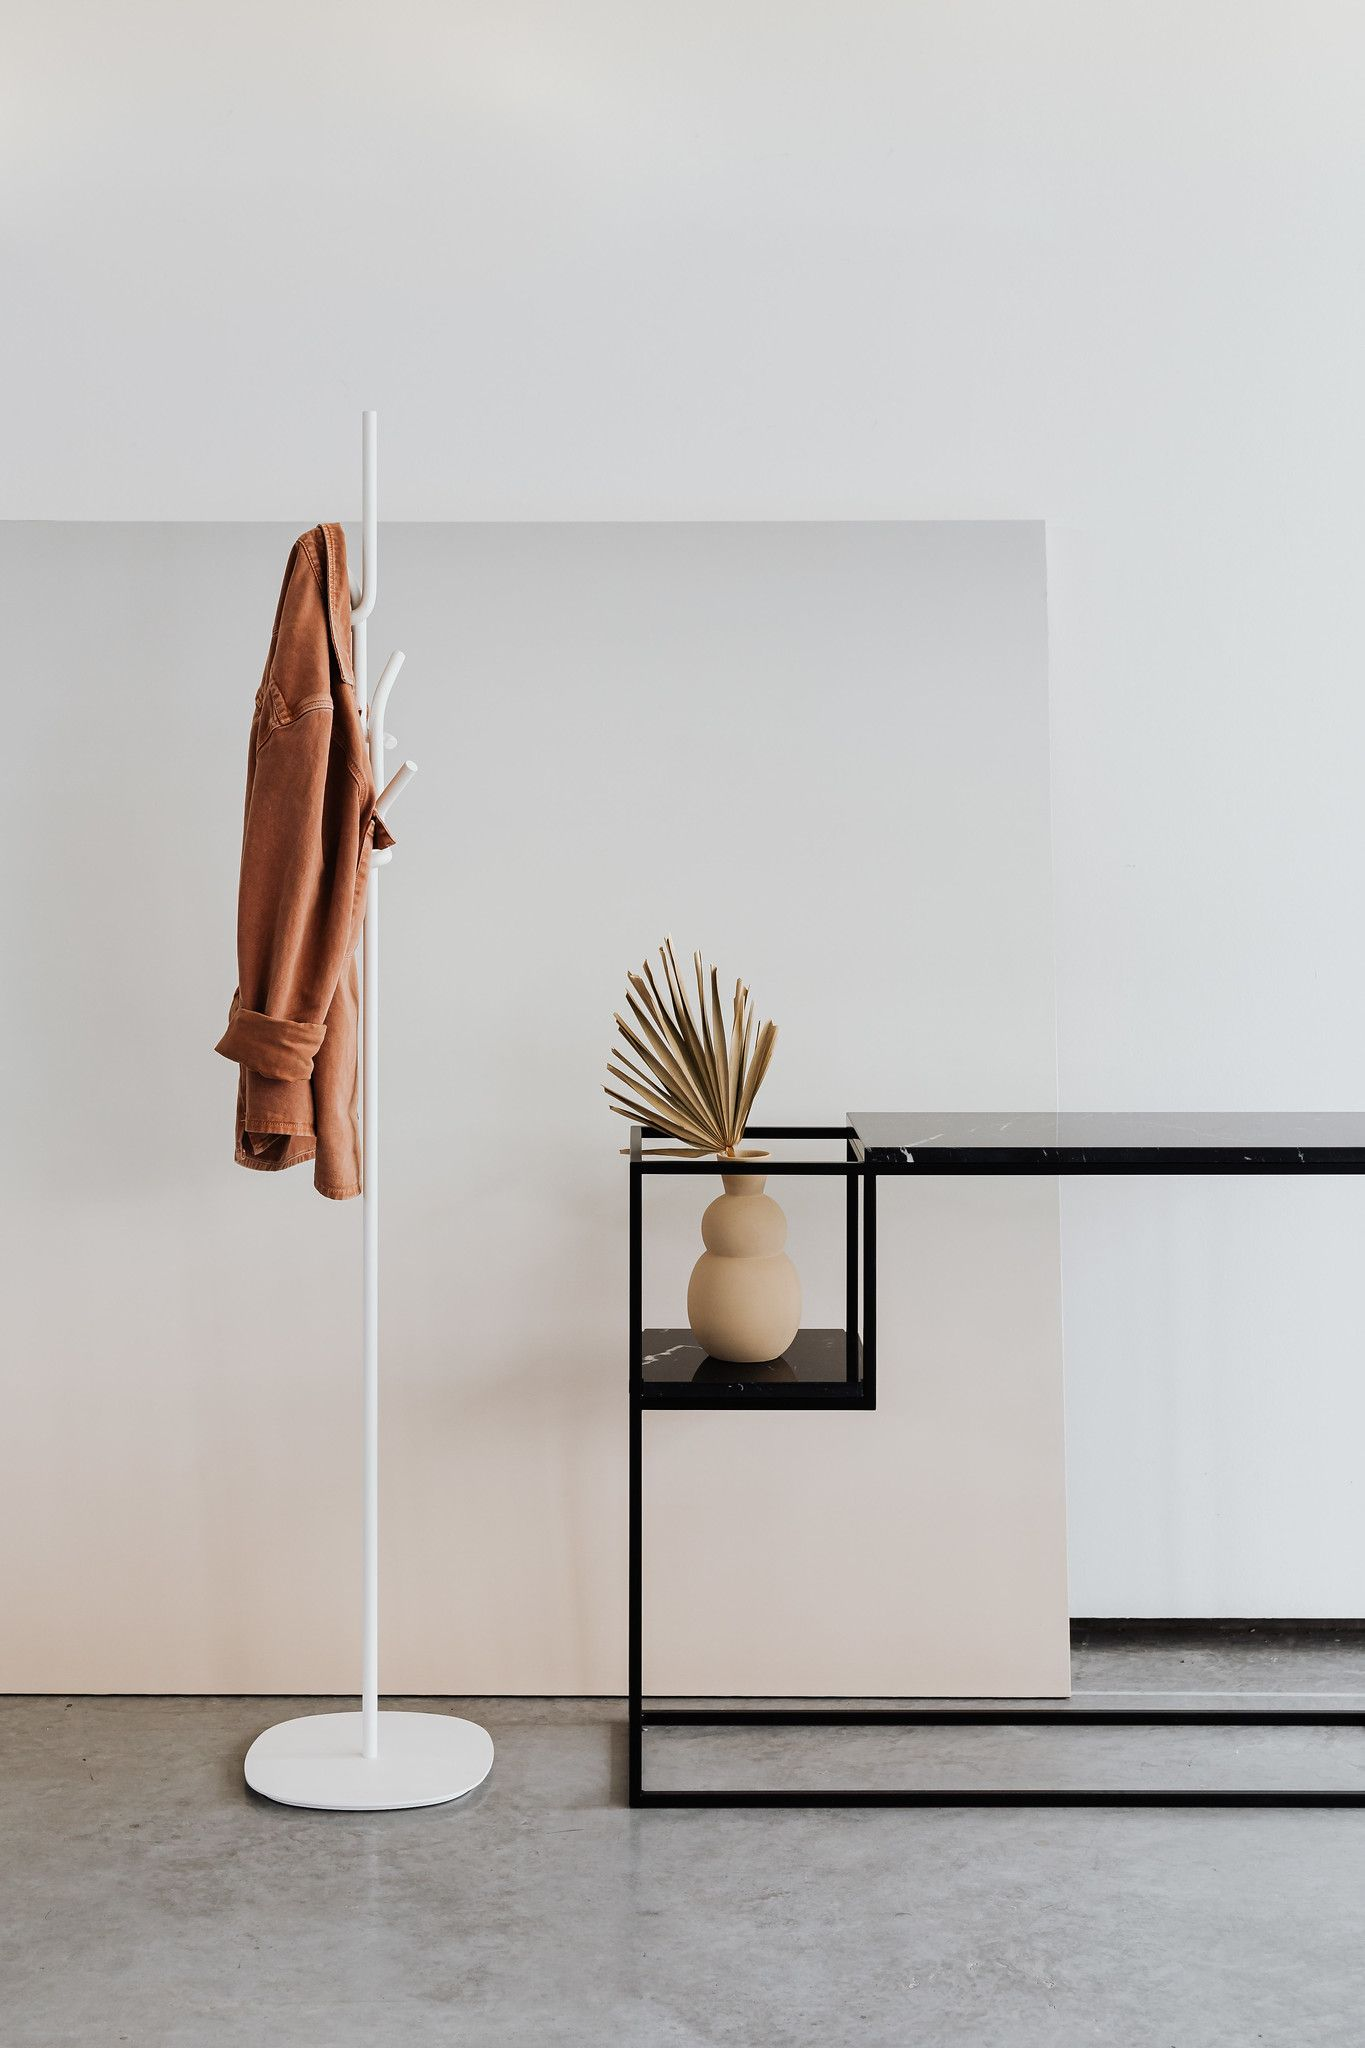 HOP MAXI is a console with a marble top on a black steel frame. Ideal for the hall, living room and bedroom. The lowered shelf is a great way to arrange flowers and books. Simplicity and harmony are best answer. #uncommondesign #marbleconsole #marbledesign #livingroomdecor #hallinspiration  Fot. Karolina Grabowska // Kaboompics